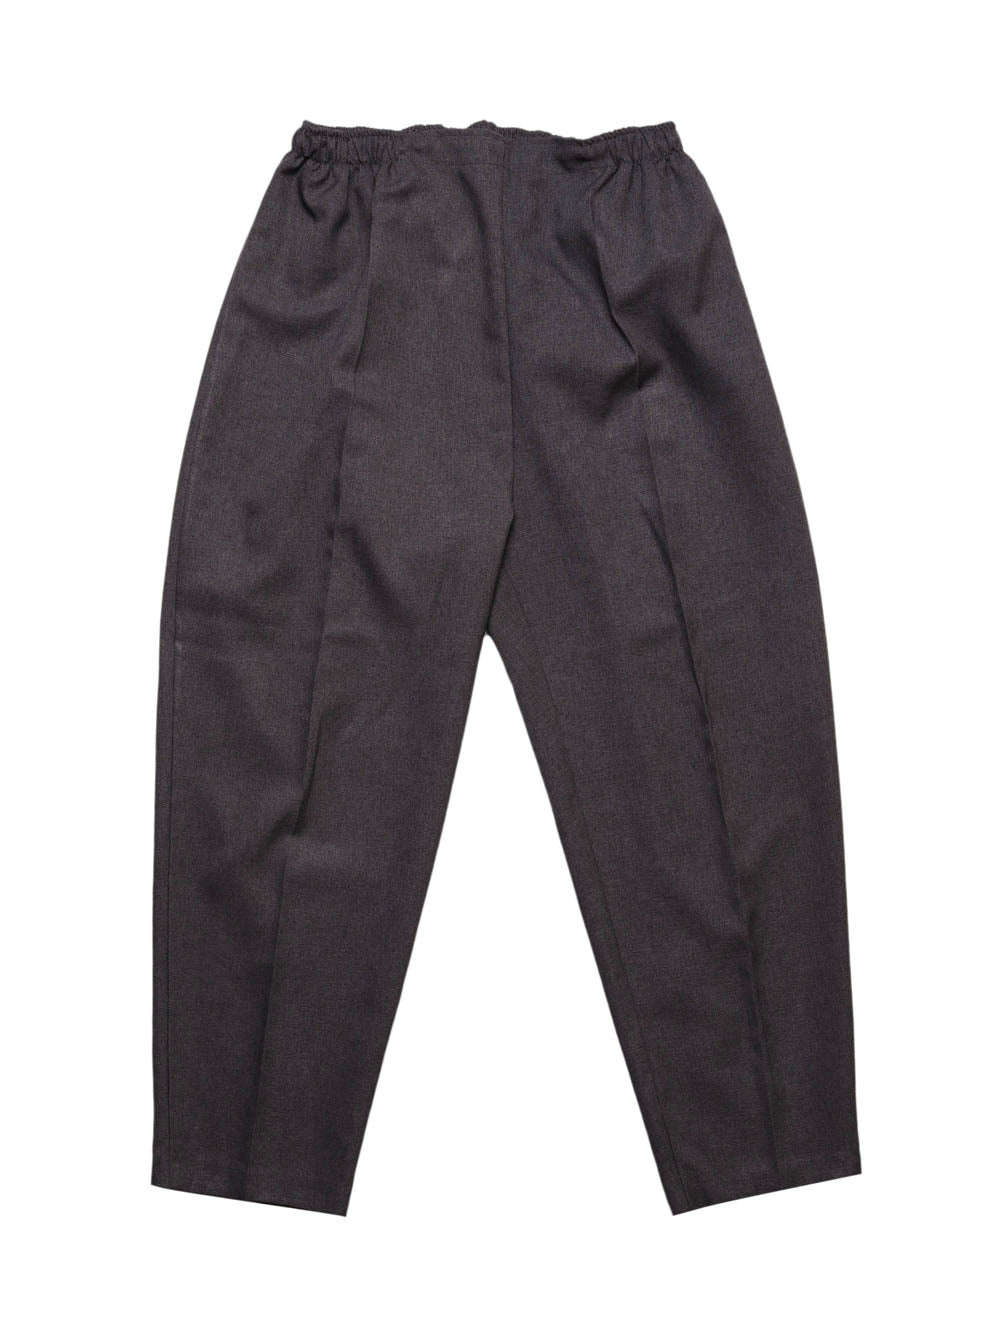 Front photo of Preloved Creazioni GFA Grey Woman's trousers - size 18/XXXL